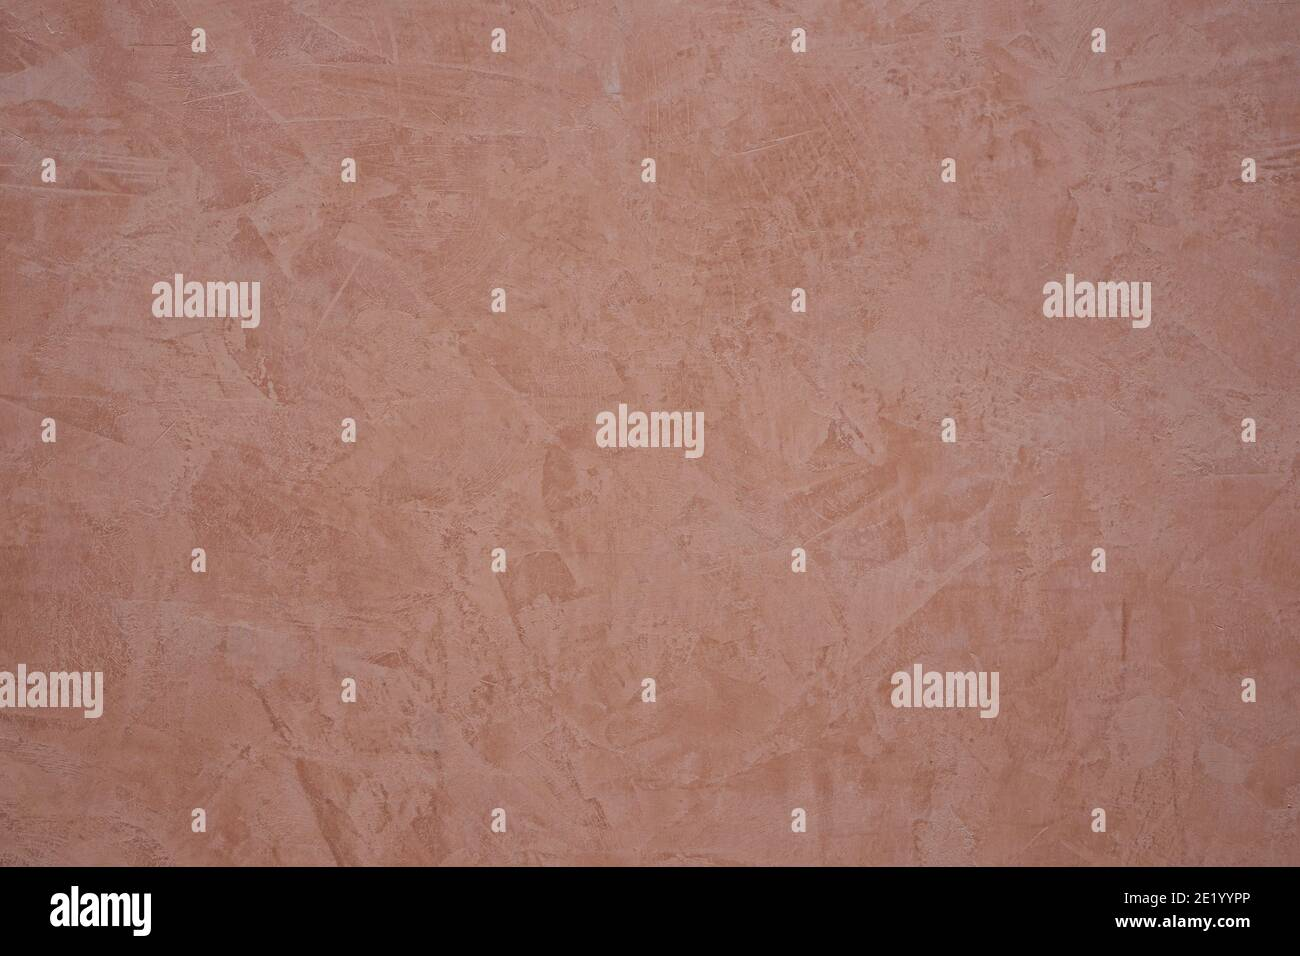 ochre colored stucco background with abstract drawings Stock Photo